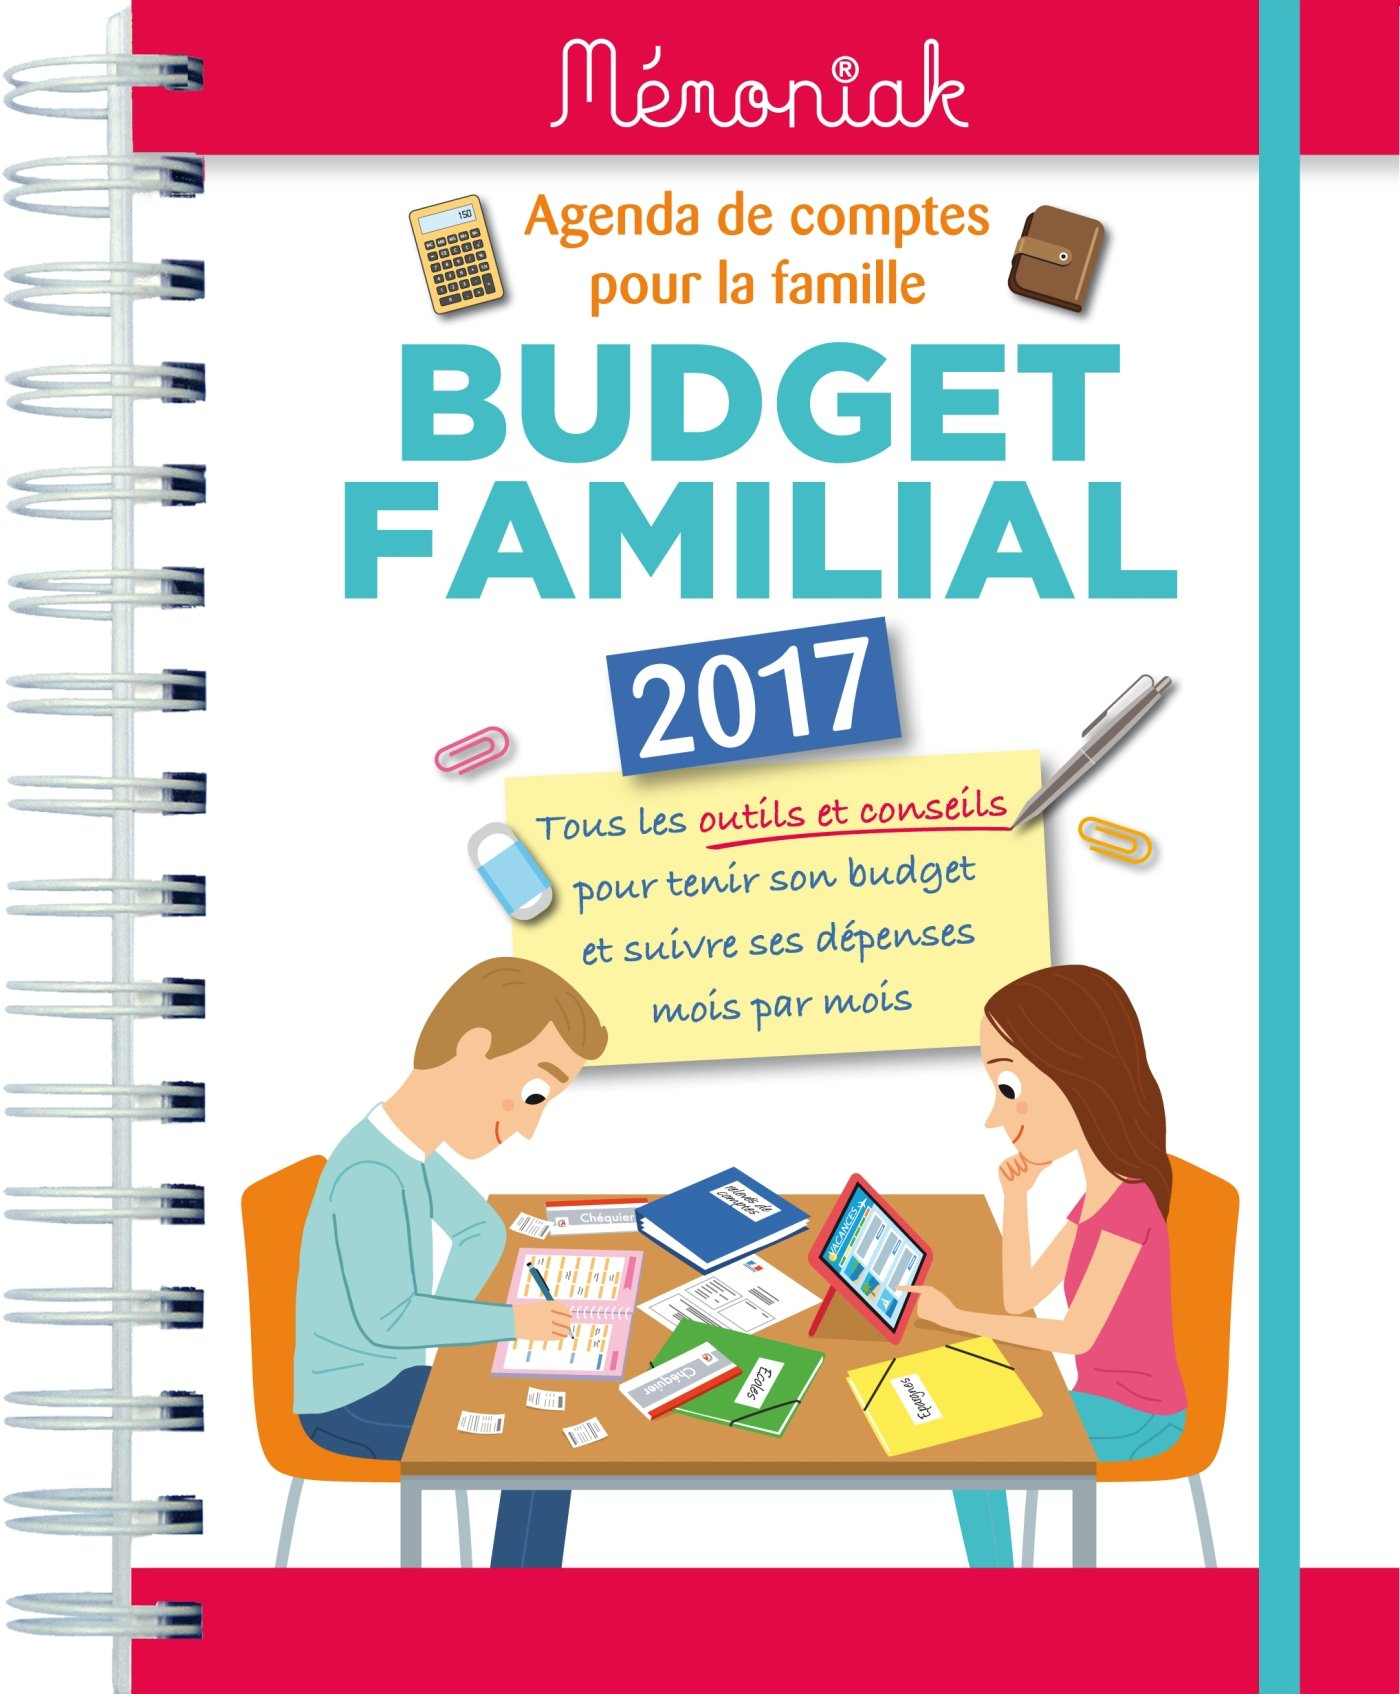 Top Amazon.fr - Budget familial Mémoniak 2017 - Collectif - Livres PQ95